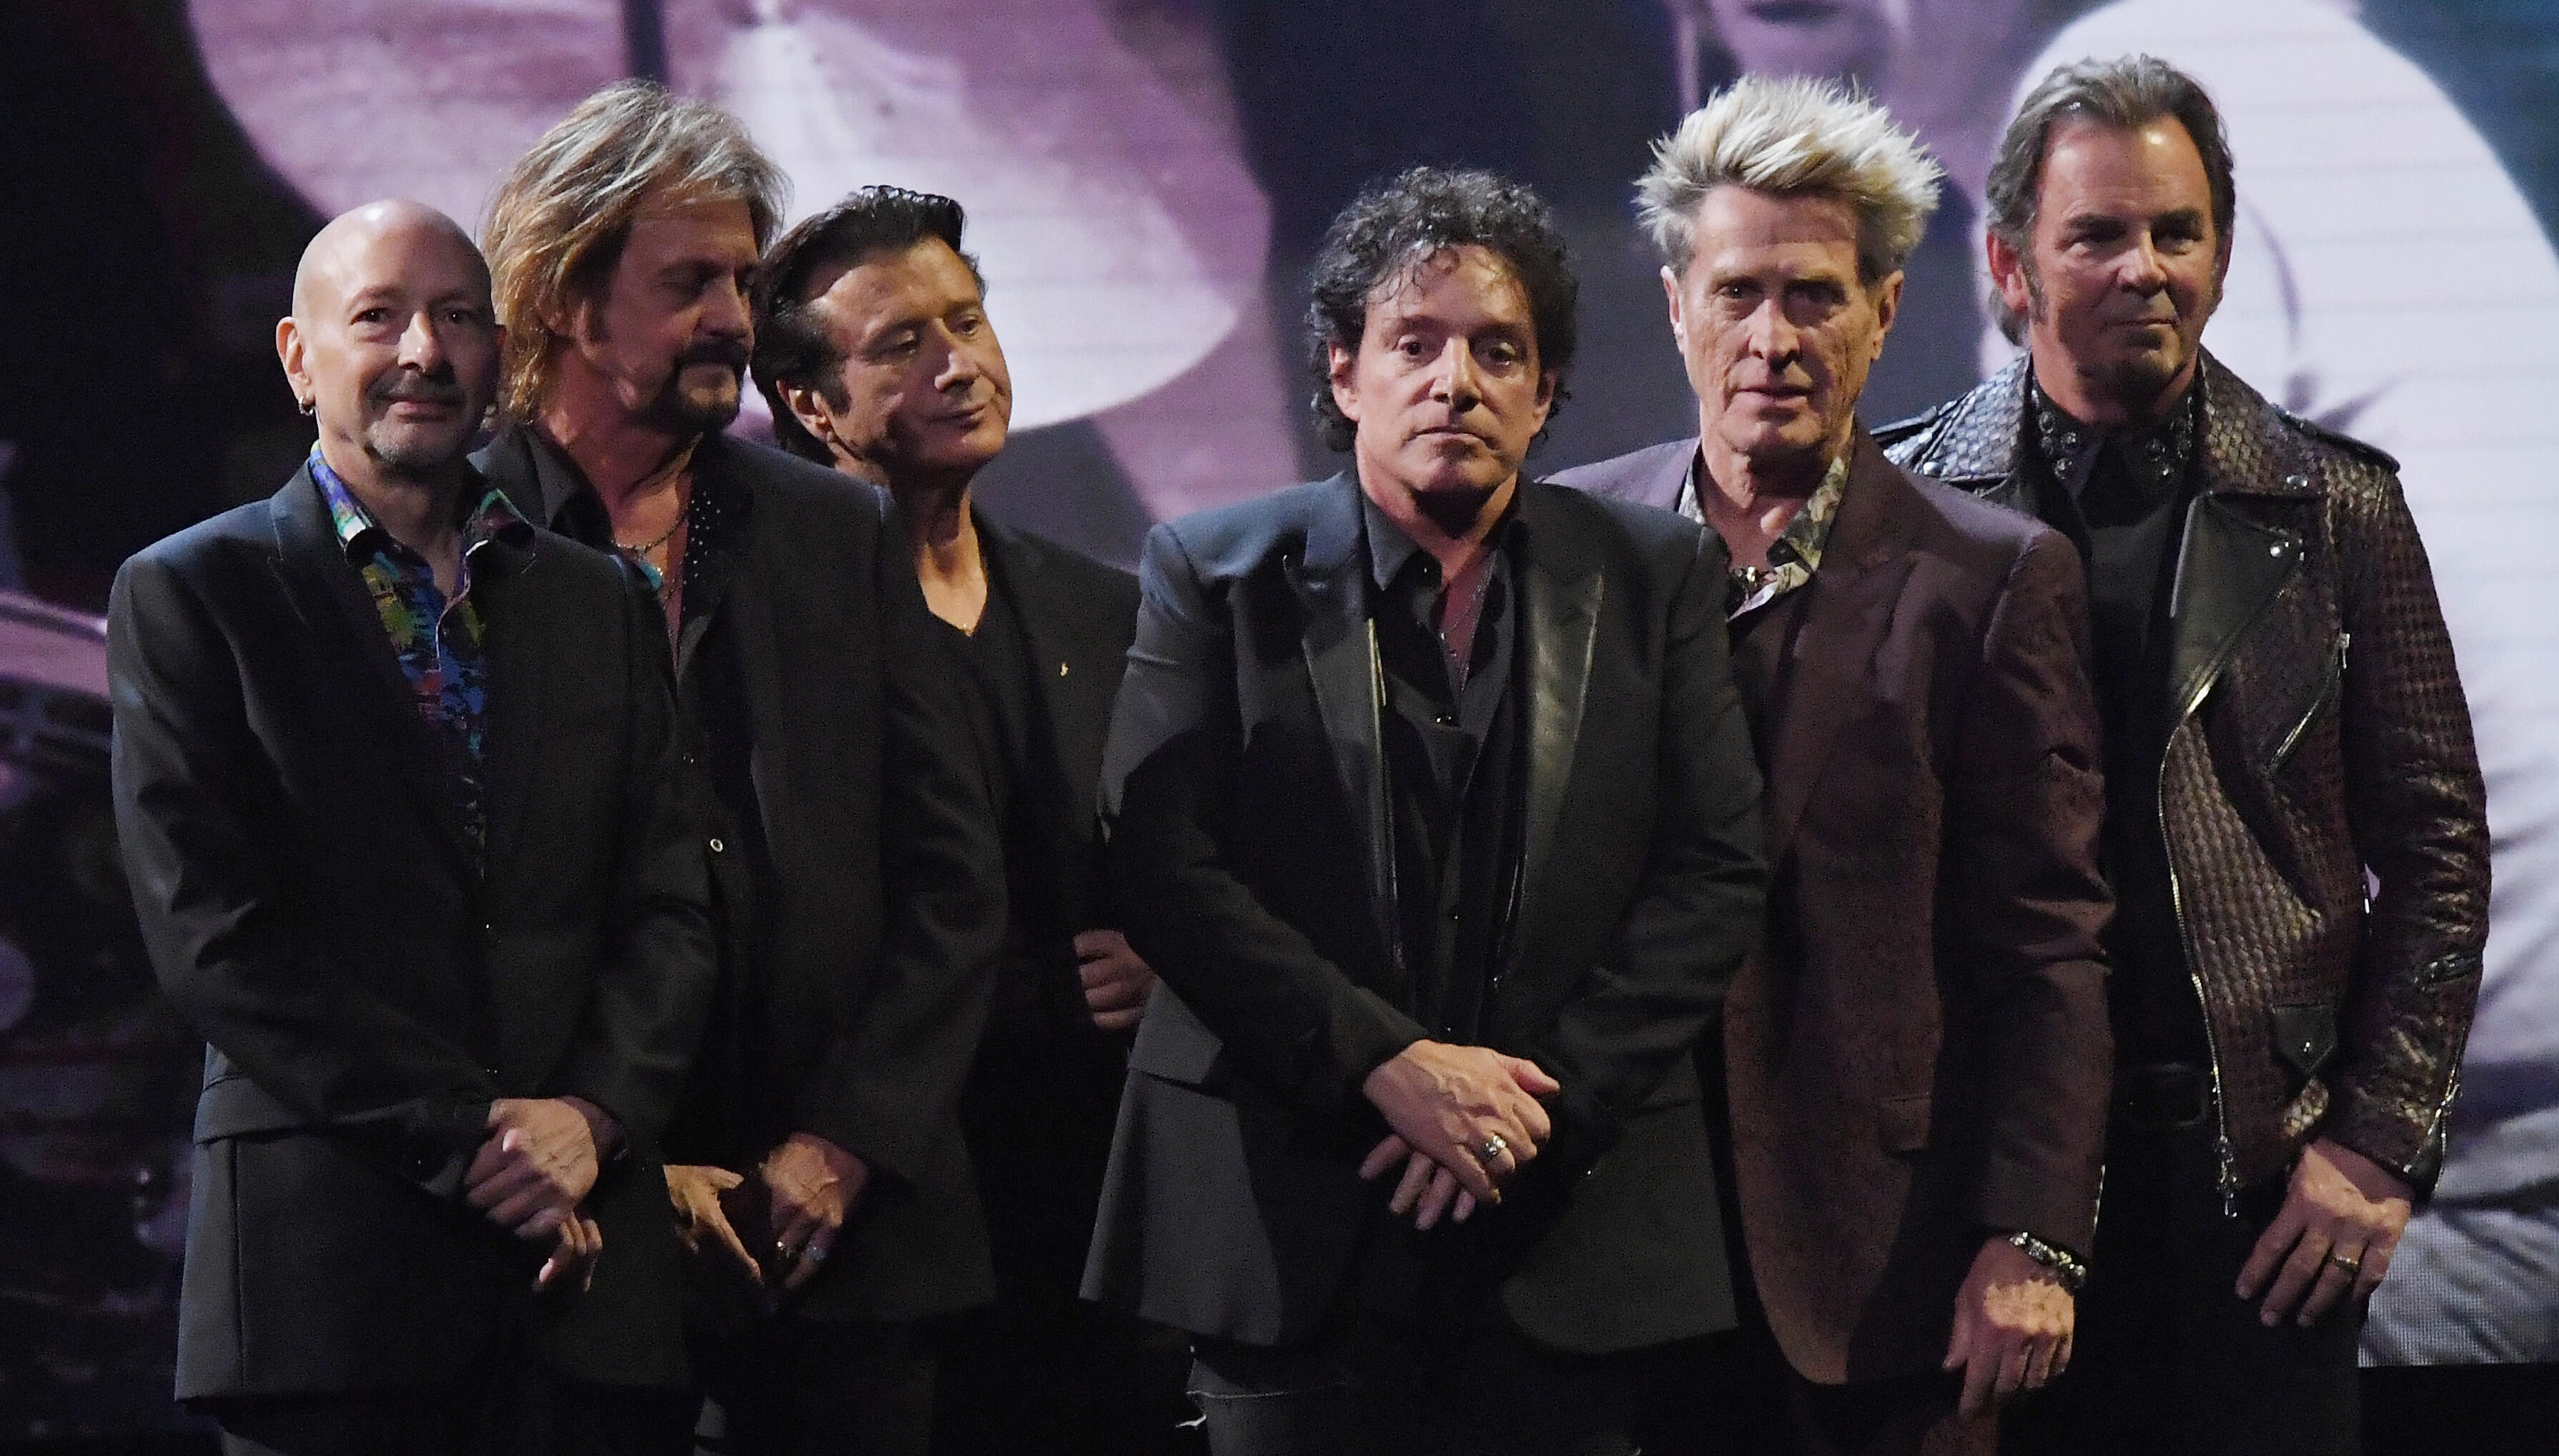 Journey Reaches 'Amicable Settlement' In Lawsuit Over Band Name